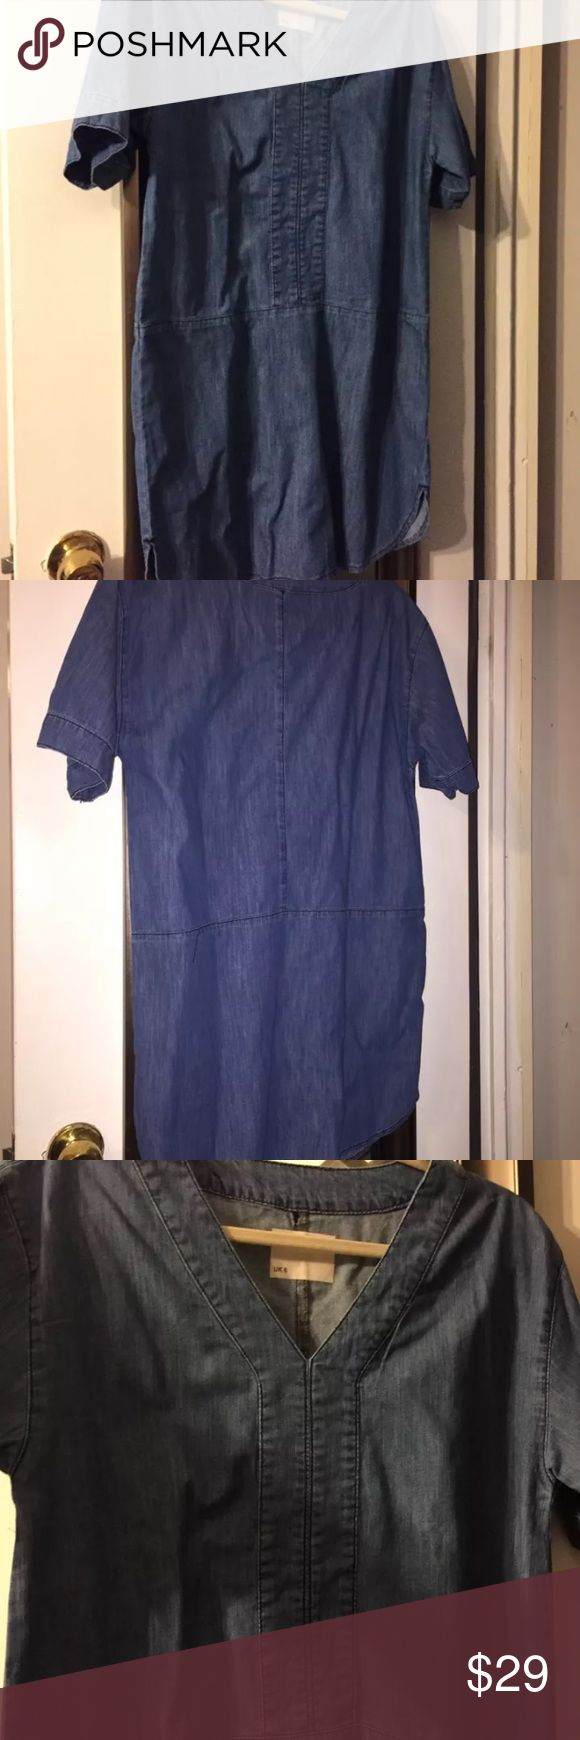 ASOS brand new denim shift dress. UK size 6 ASOS brand new denim shift dress. UK size 6  (They says it's like a US 2 but it's a very big 2 - roomy - wide very baggy fit, yet short in length)  The denim wash color is a medium to darker wash - it was hard to get it represented just right - the last photo best shows the color  I ordered this final sale and it was way too big but super cute and great quality ASOS Dresses Mini